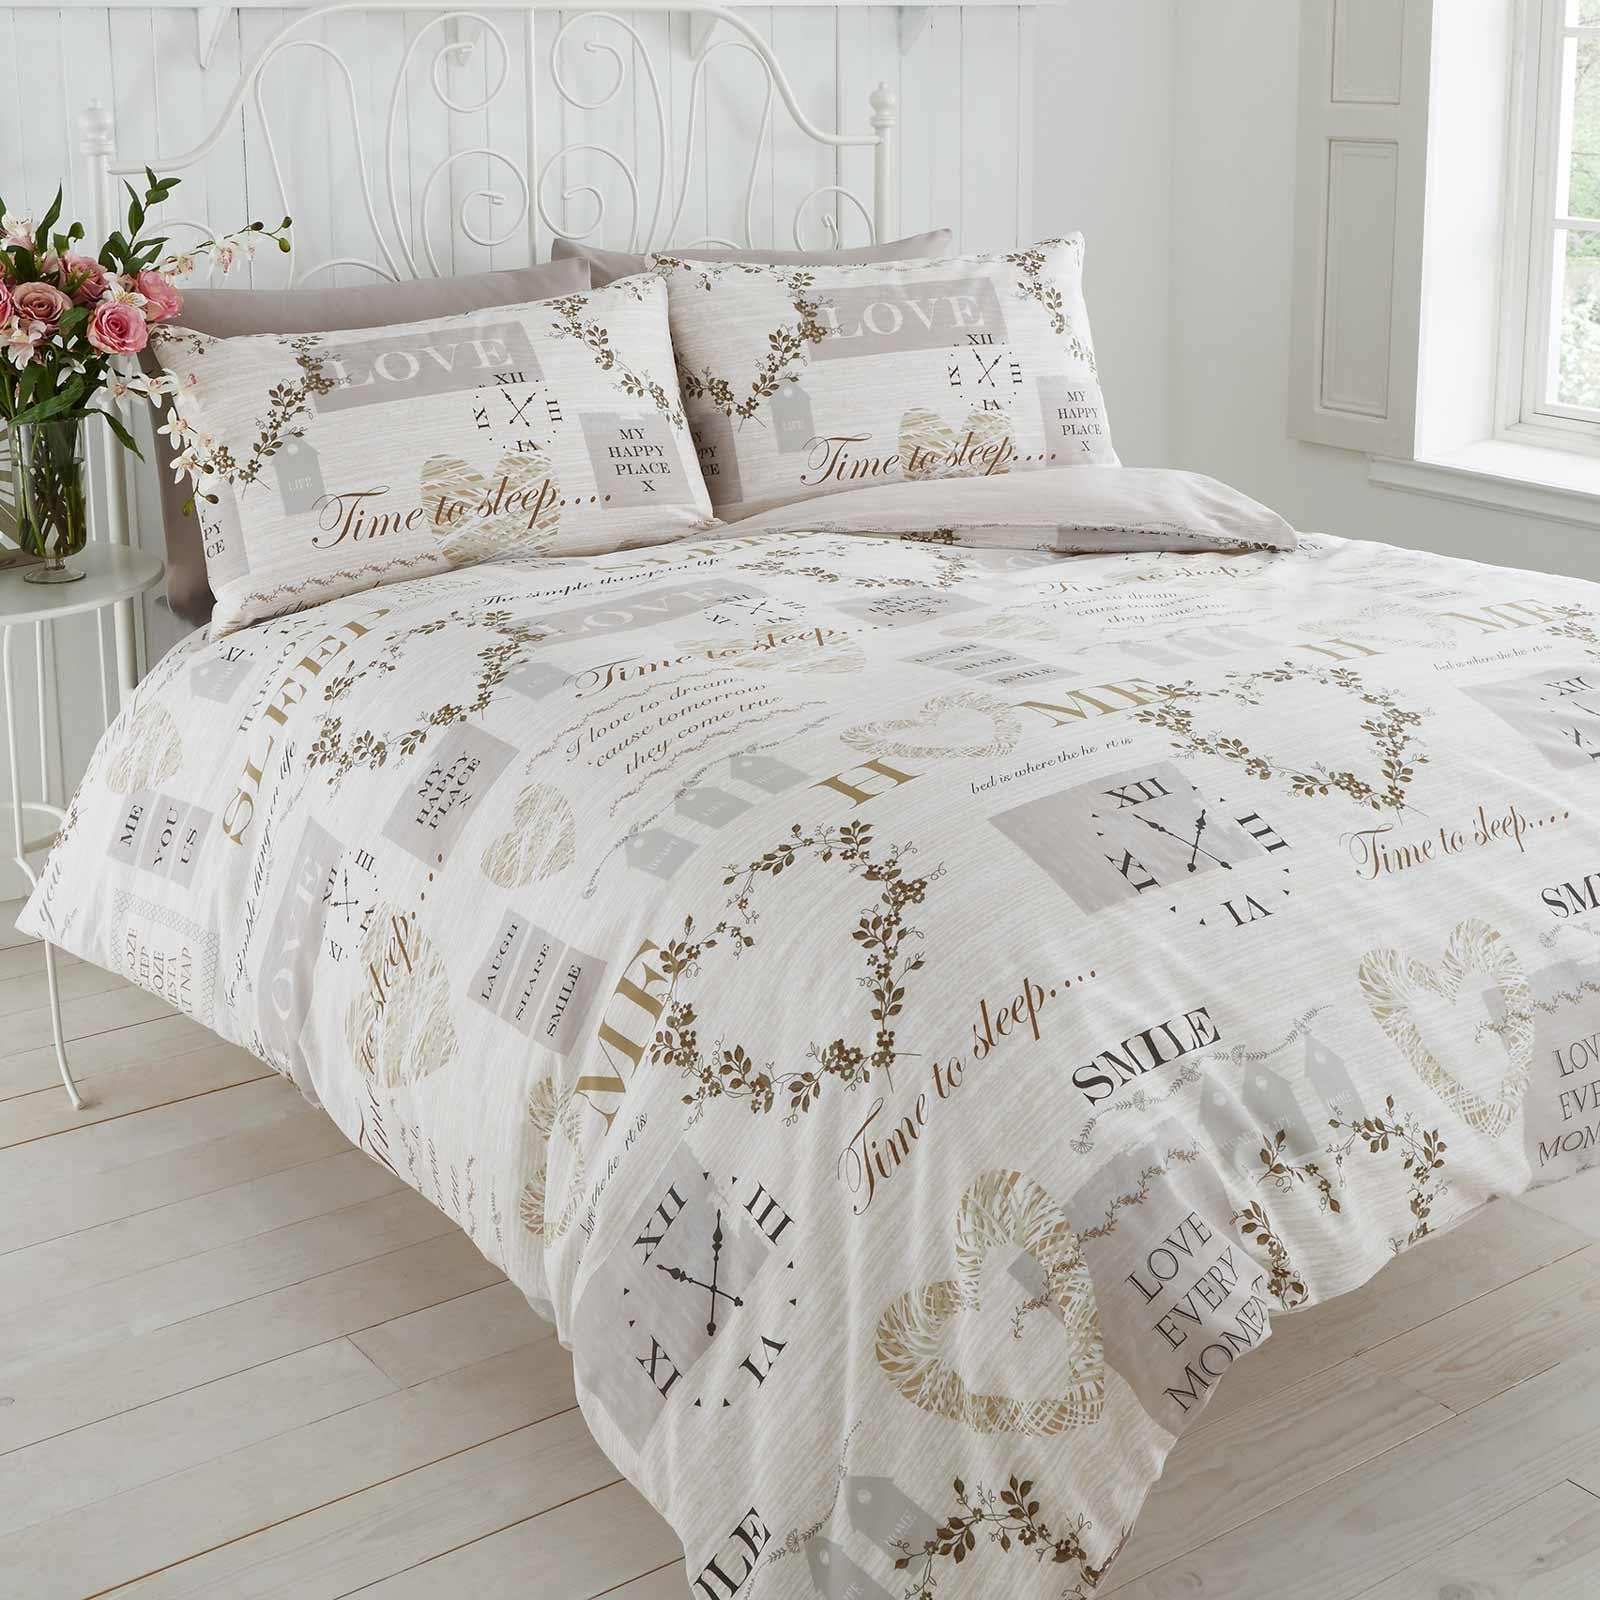 Cream Duvet Covers Vintage Hearts Sleep Love Quotes Quilt Cover Bedding Sets Ebay